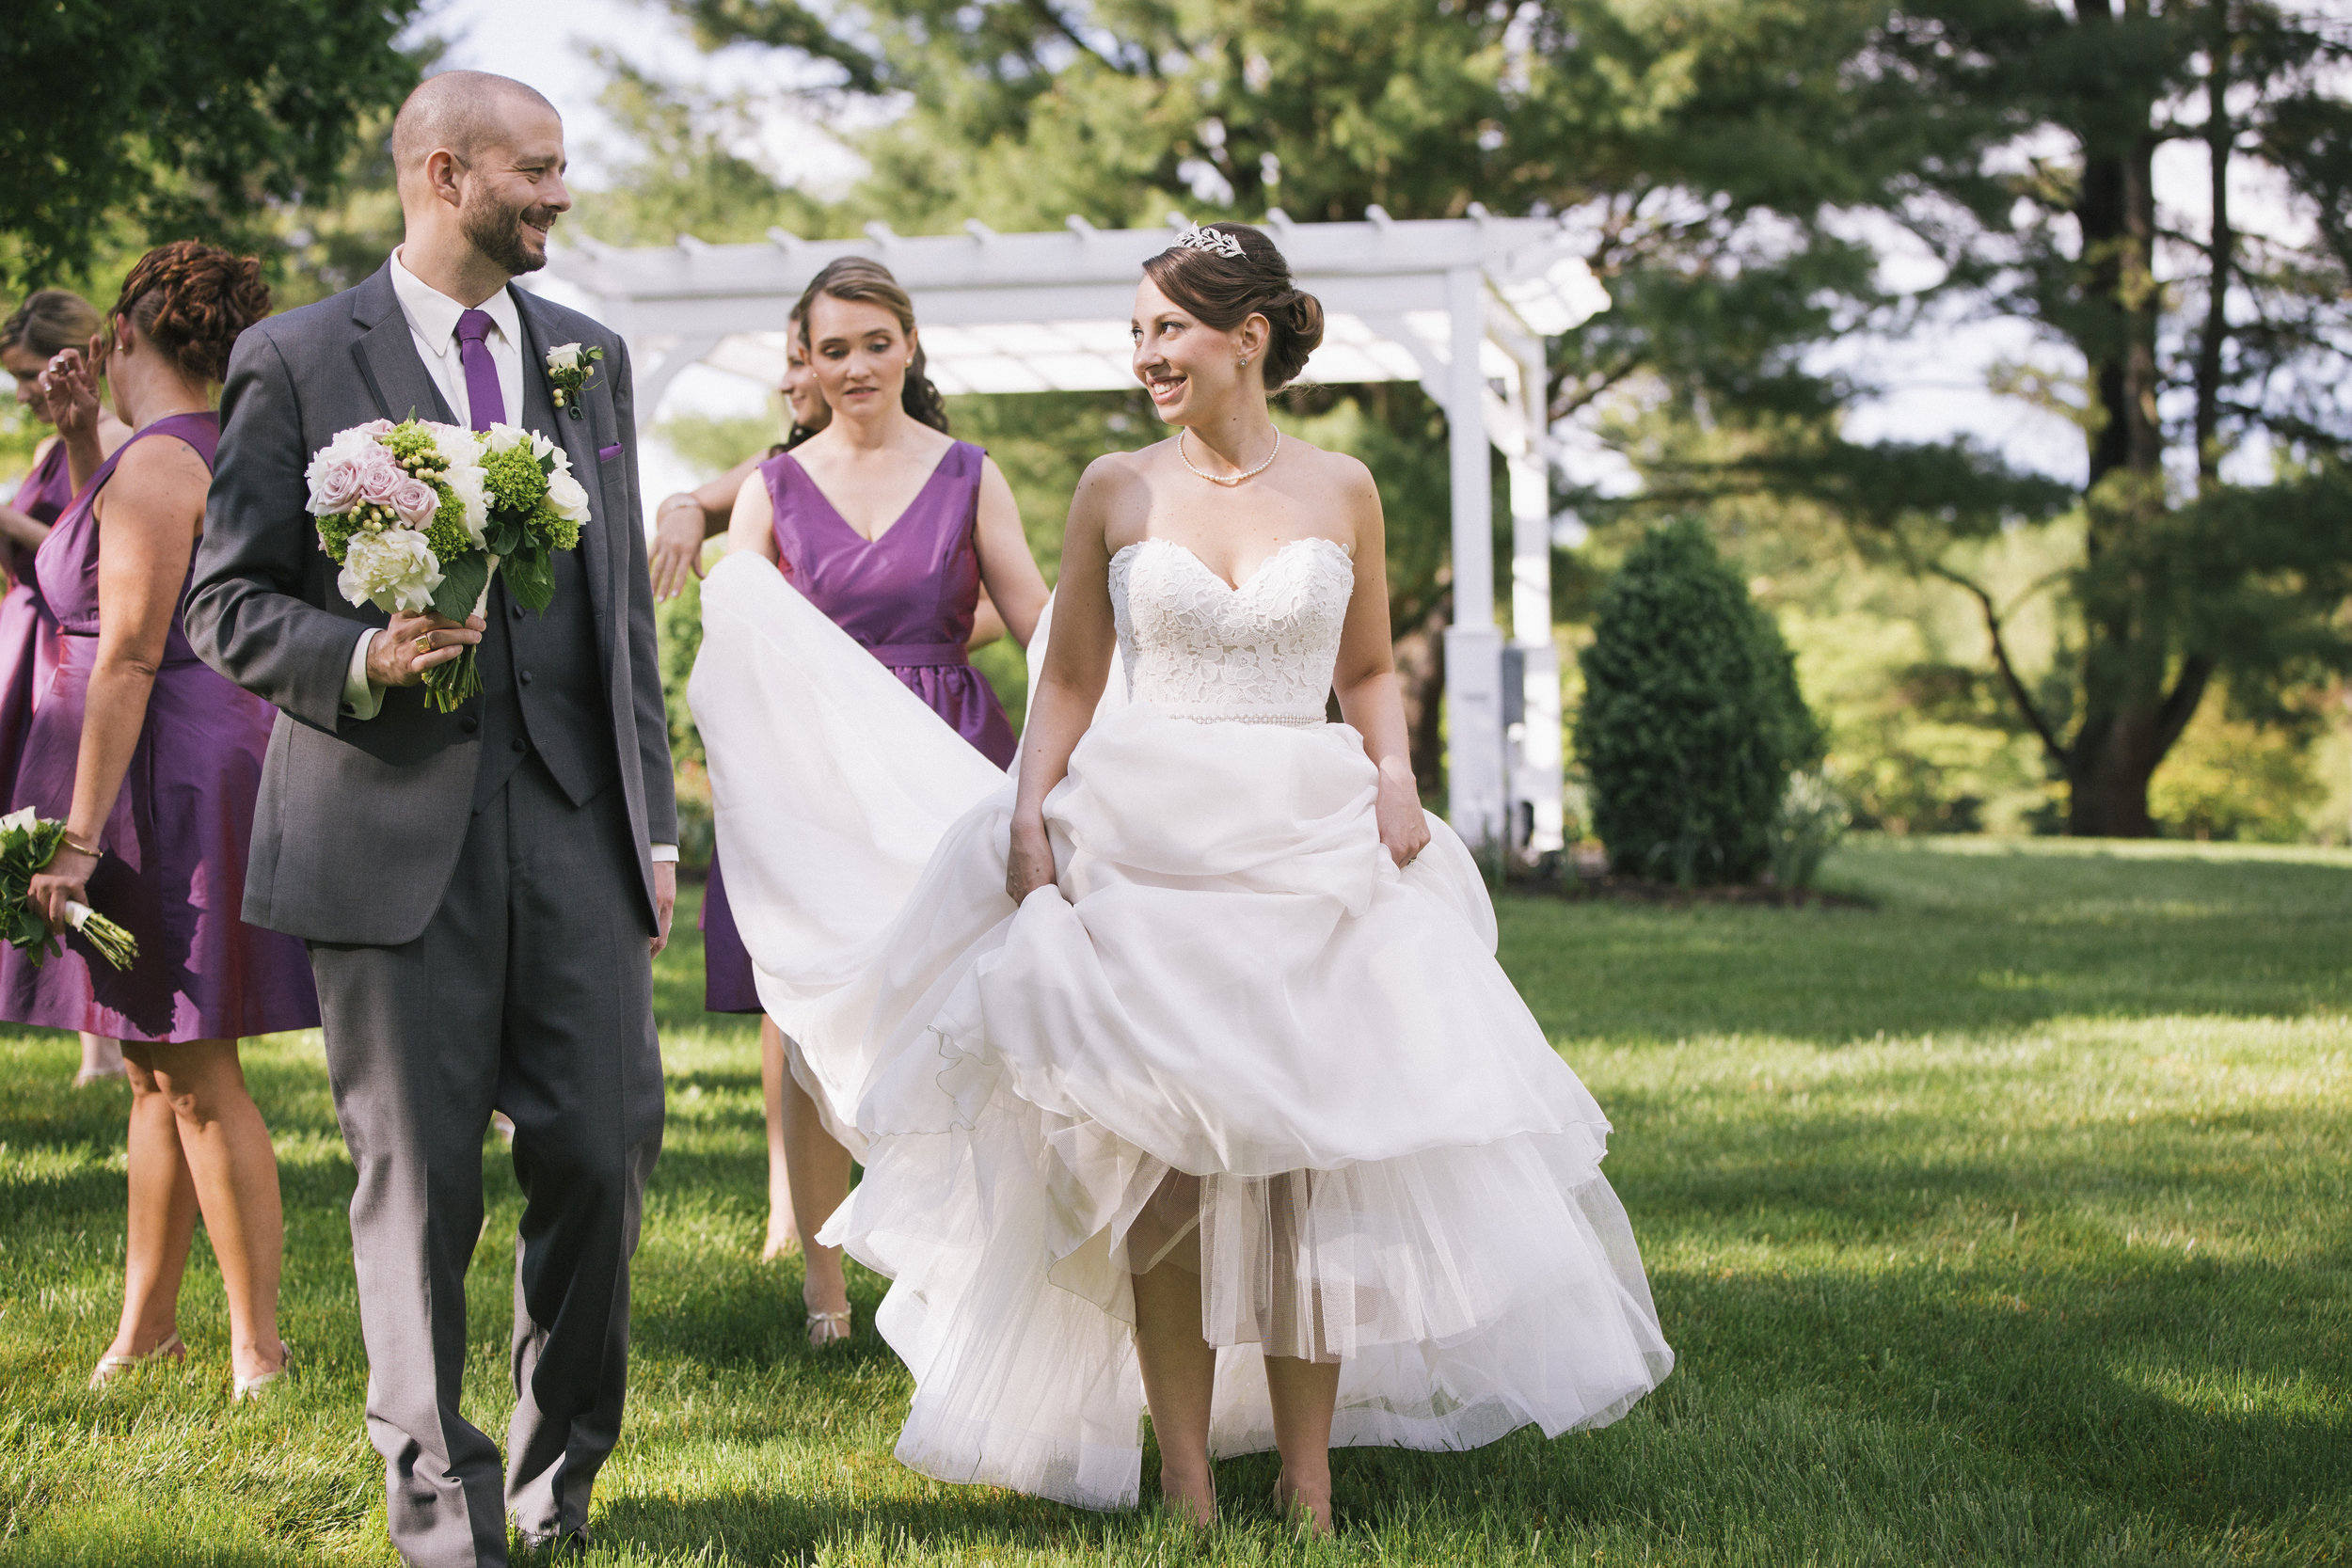 The_Bridal_Party_HIGH_RES-22.jpg